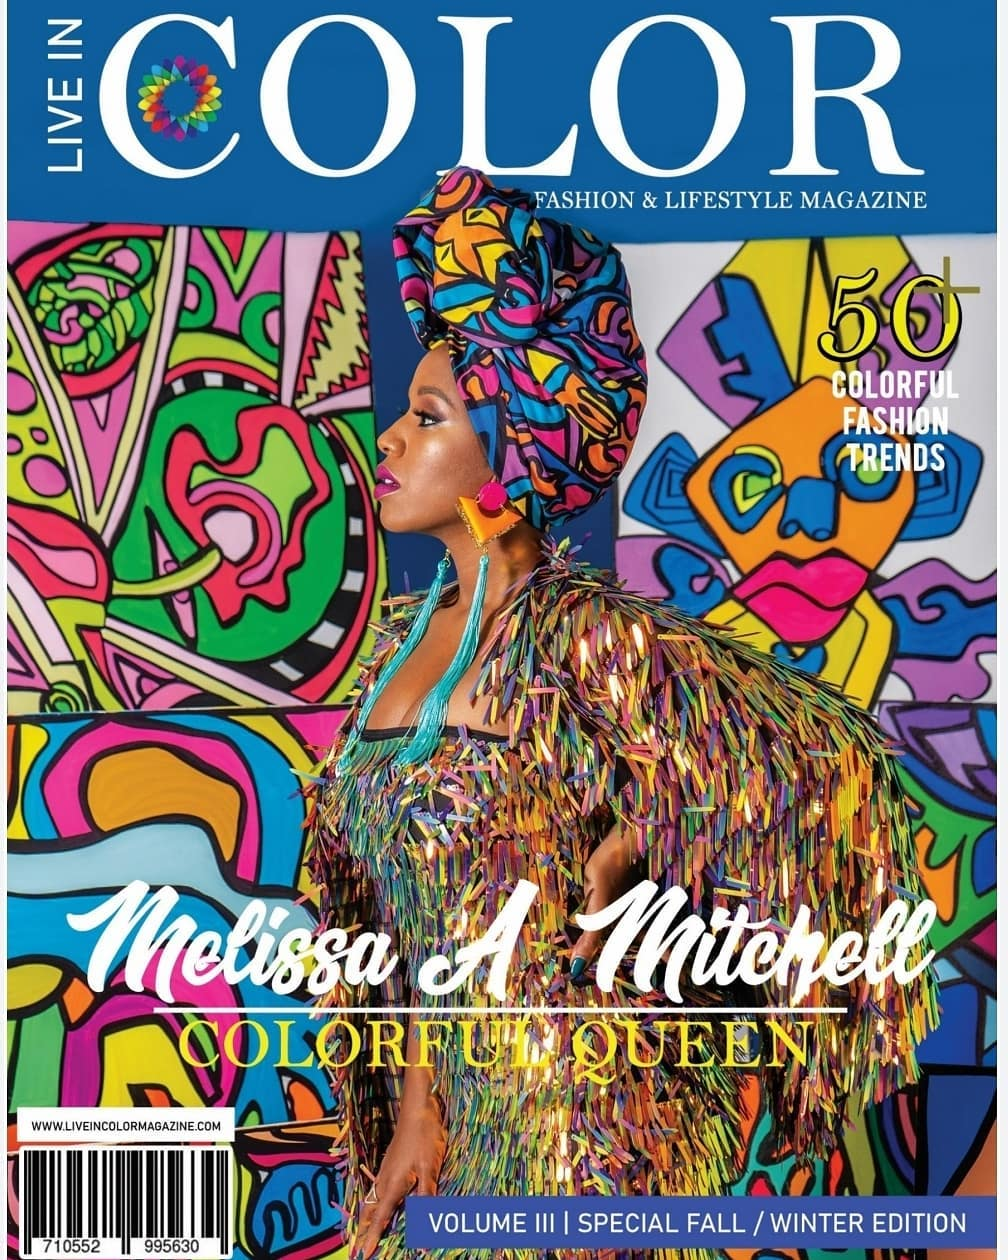 Live In Color Fashion & Lifestyle Magazine -  'Colorful Queens' Special Edition